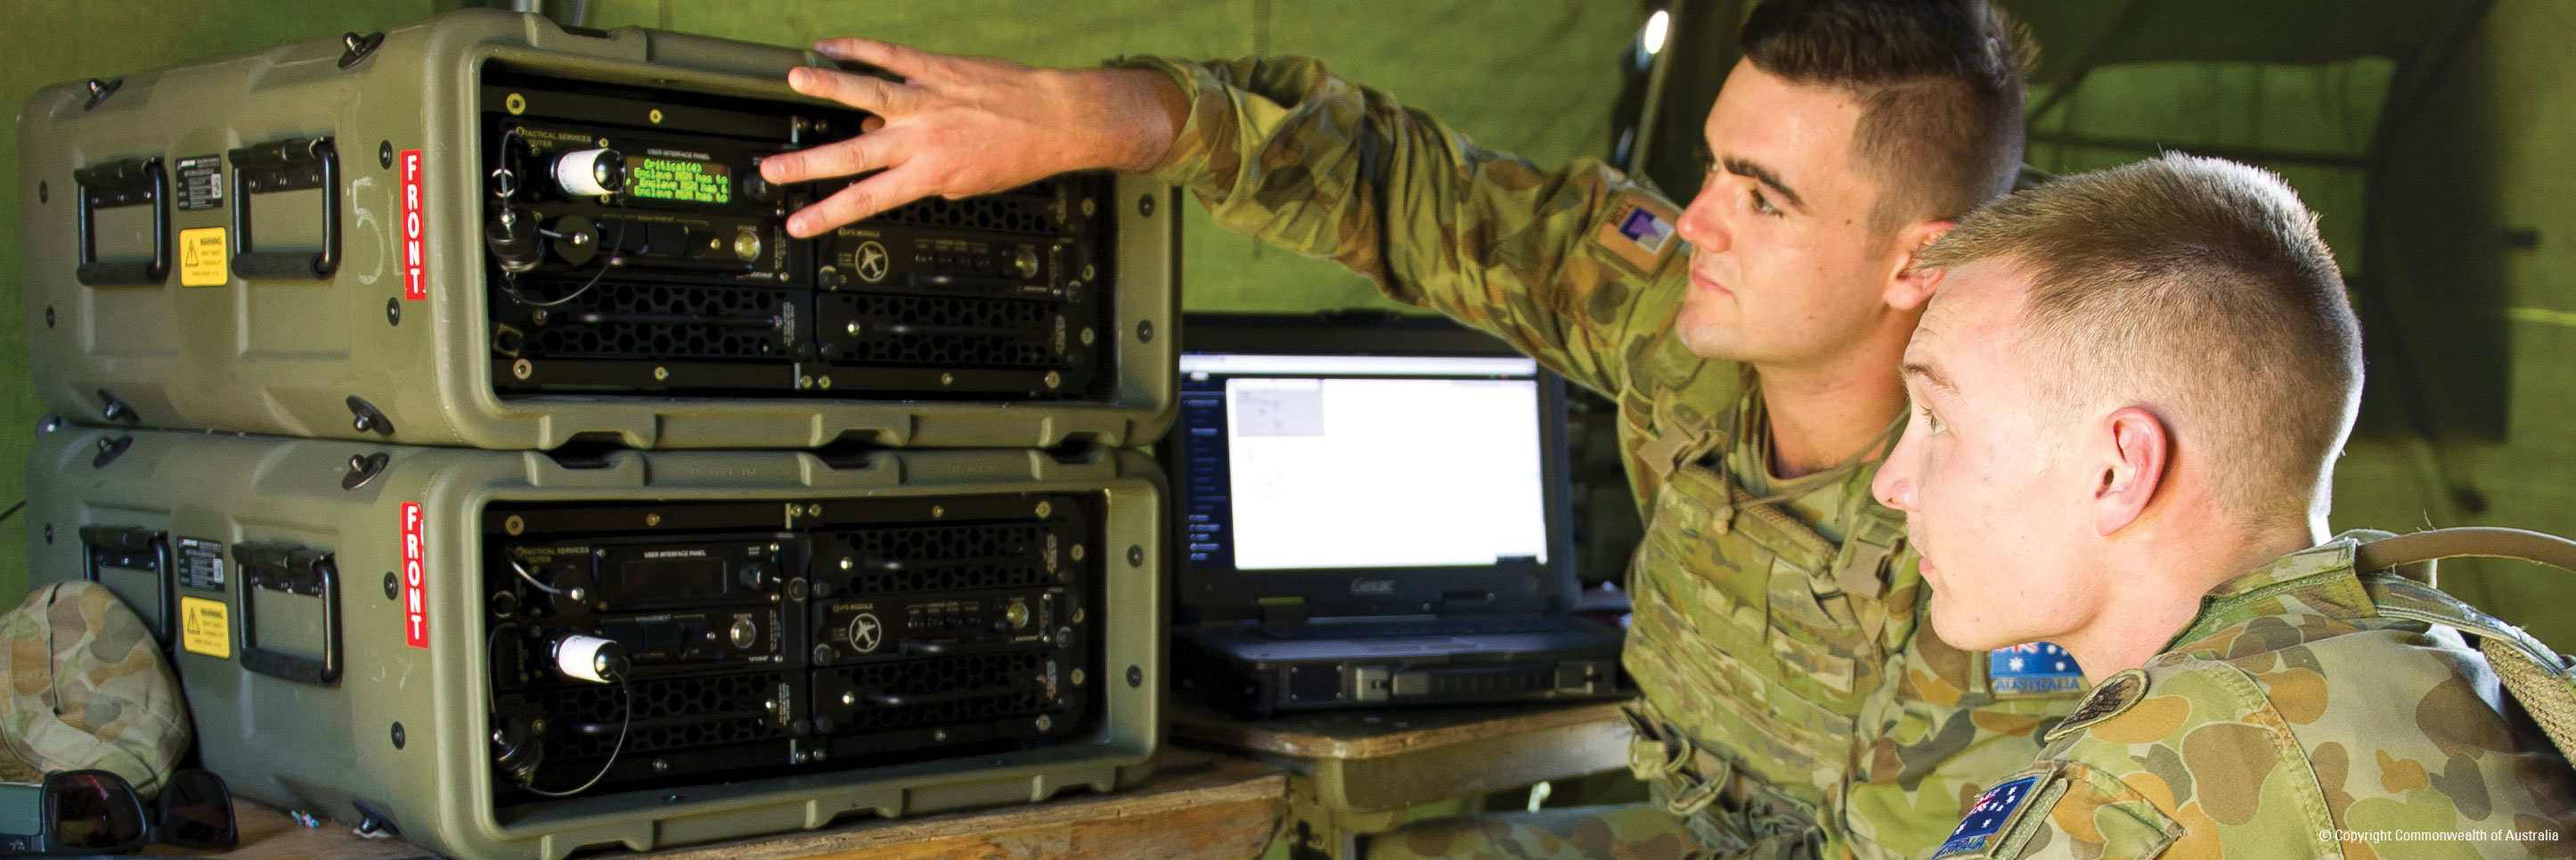 Soldiers with communication equipment